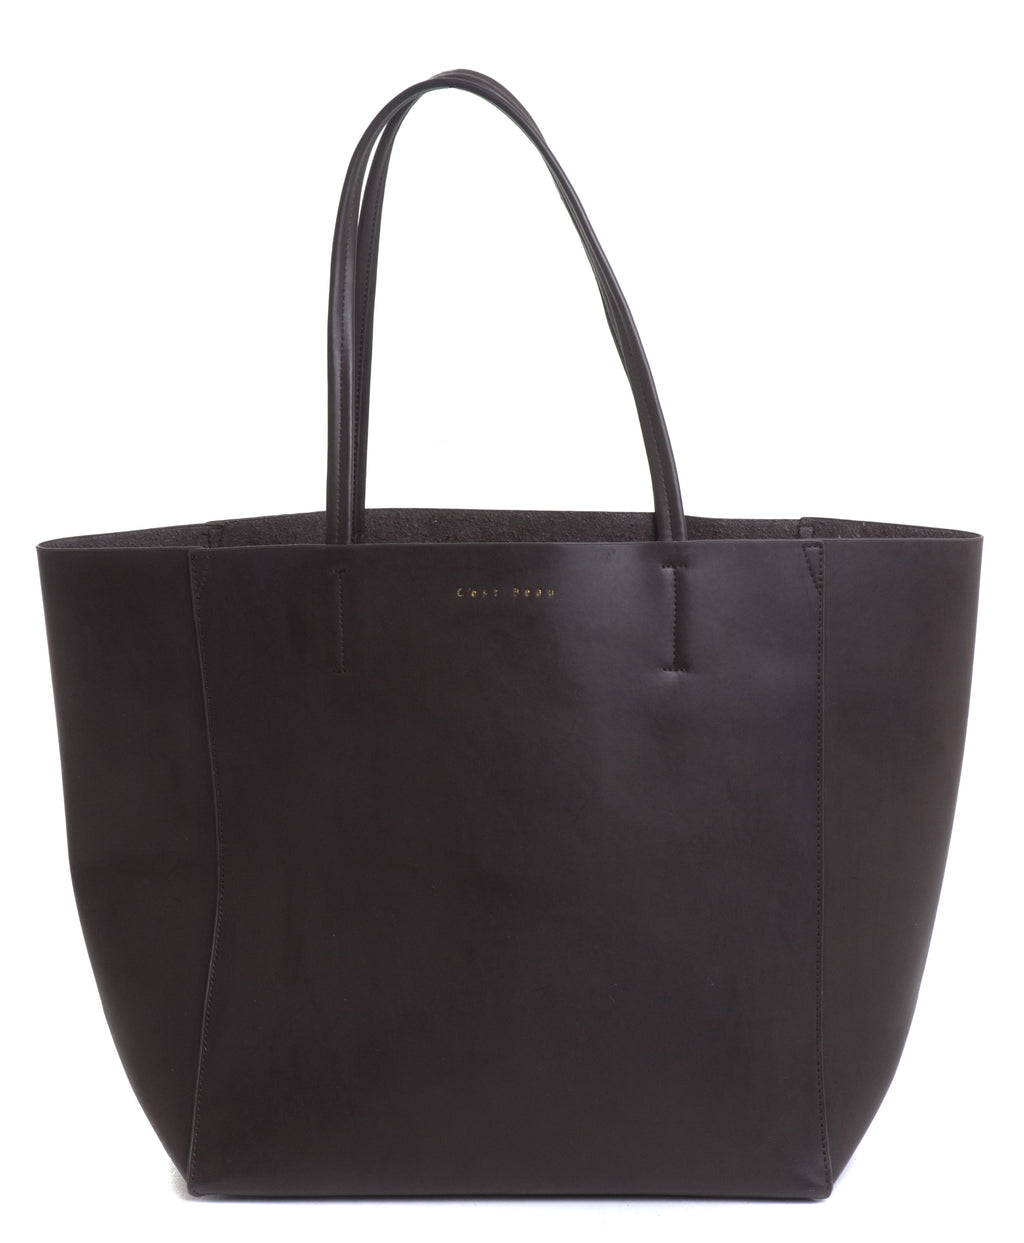 C'est Beau Ivy Shopper Brown Shoulder Bag